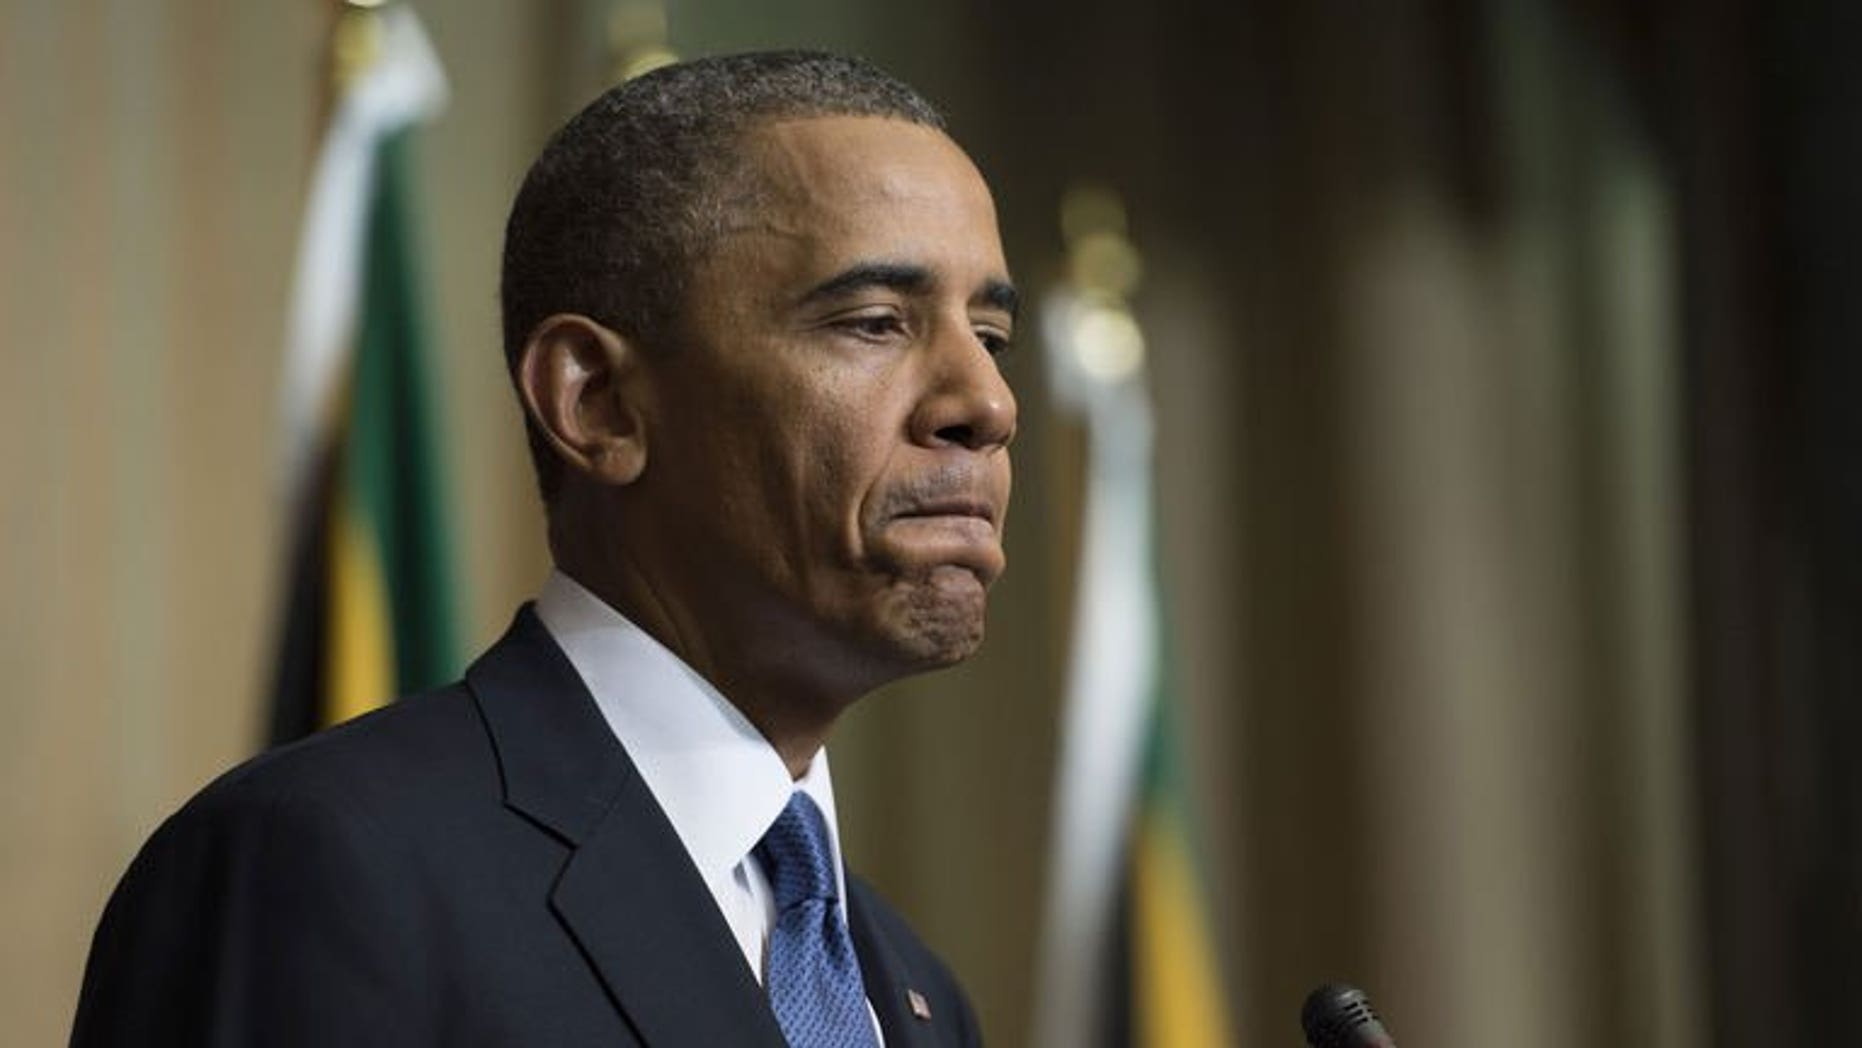 """US President Barack Obama addresses a news conference in Pretoria, South Africa, June 29, 2013. Obama has said the """"timing was not right"""" for him to travel to Kenya, his father's homeland, during his current Africa tour, but he expected to go there many times in the future."""